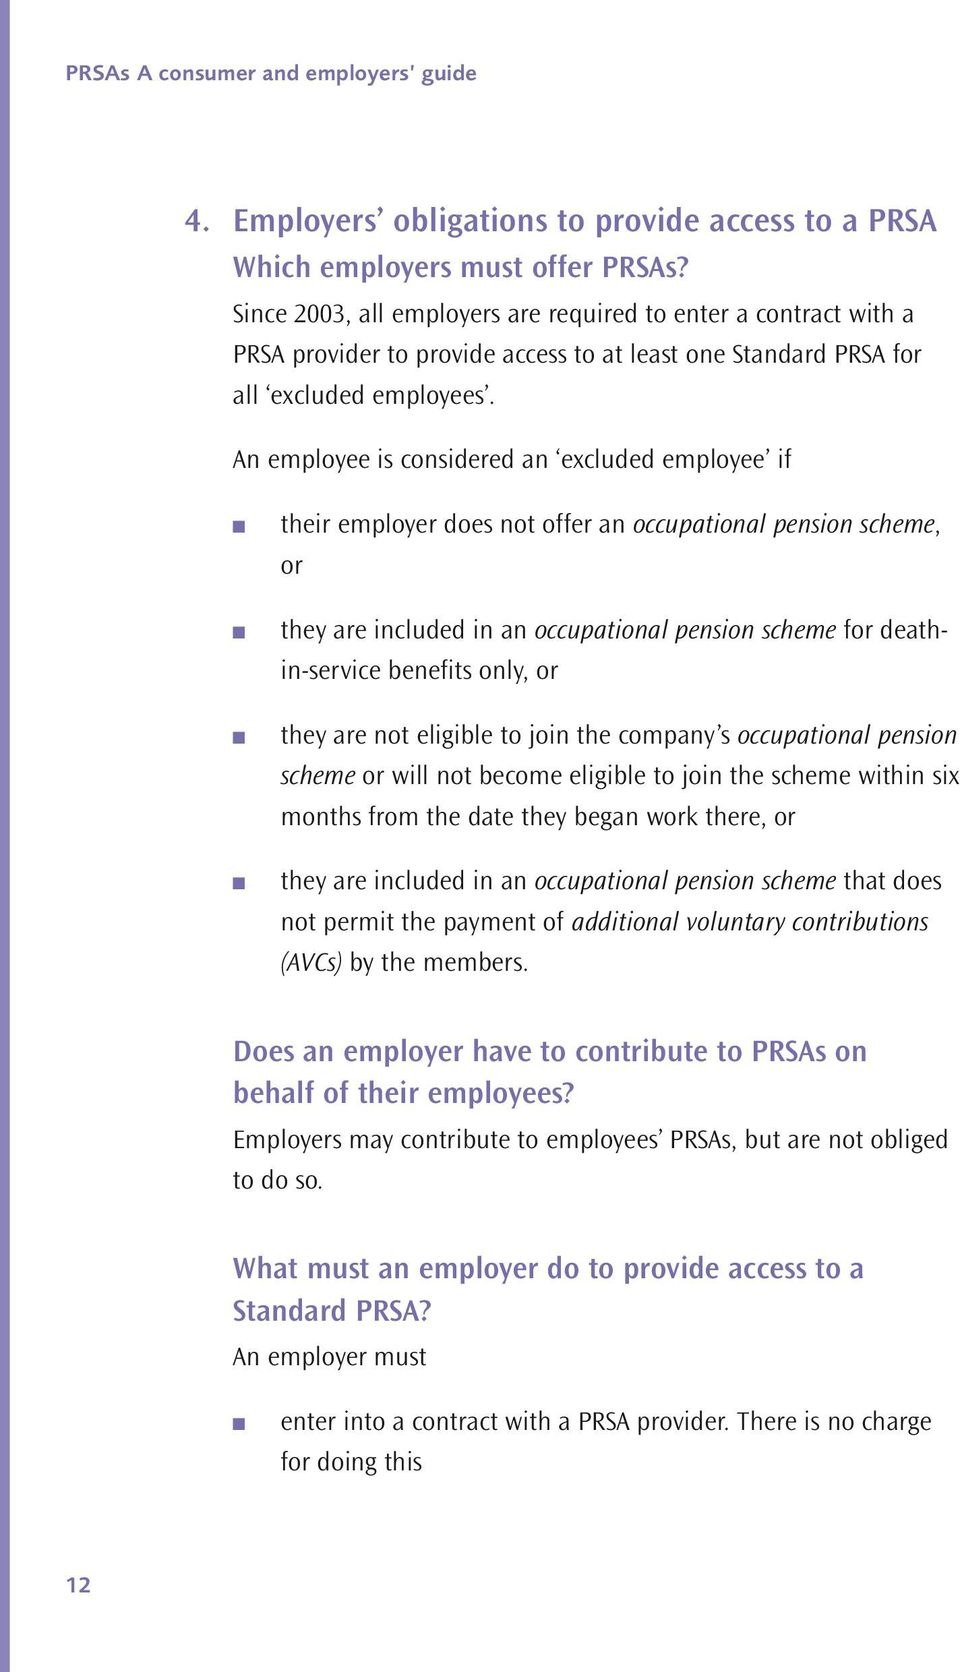 A employee is cosidered a excluded employee if their employer does ot offer a occupatioal pesio scheme, or they are icluded i a occupatioal pesio scheme for deathi-service beefits oly, or they are ot